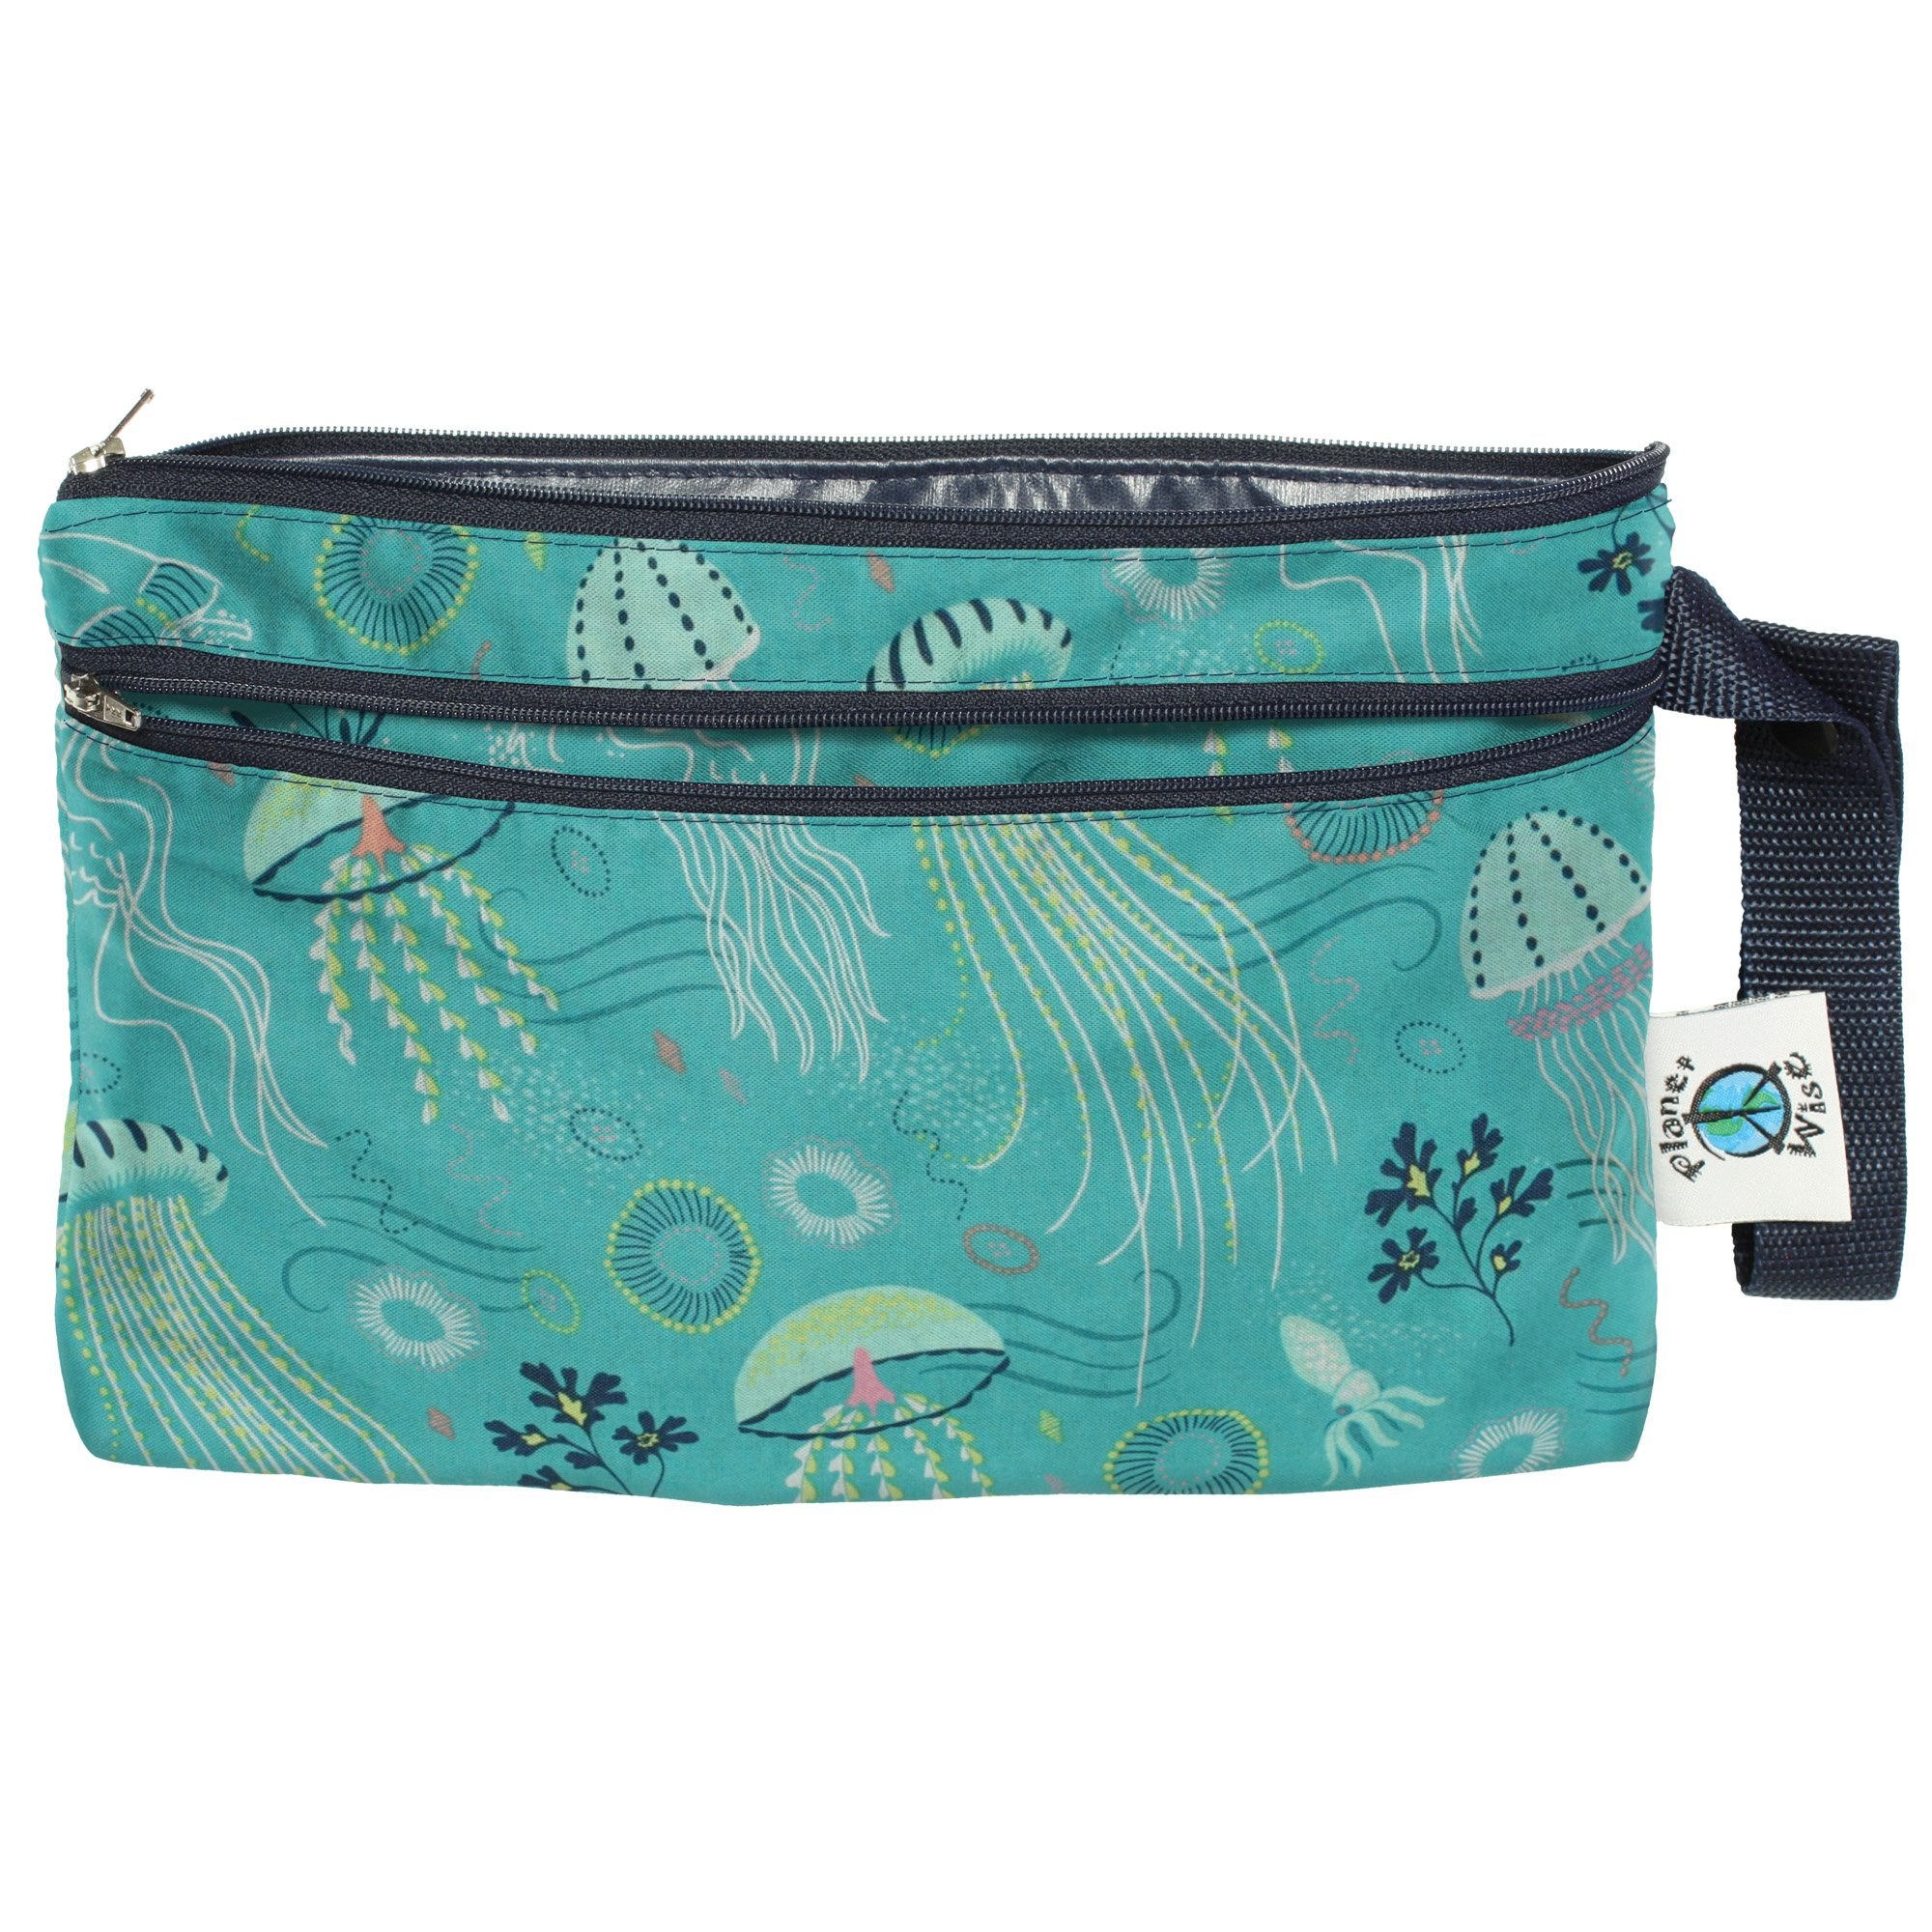 Planet Wise Clutch Wet/Dry Bag, Jelly Jubilee, Made in The USA by Planet Wise